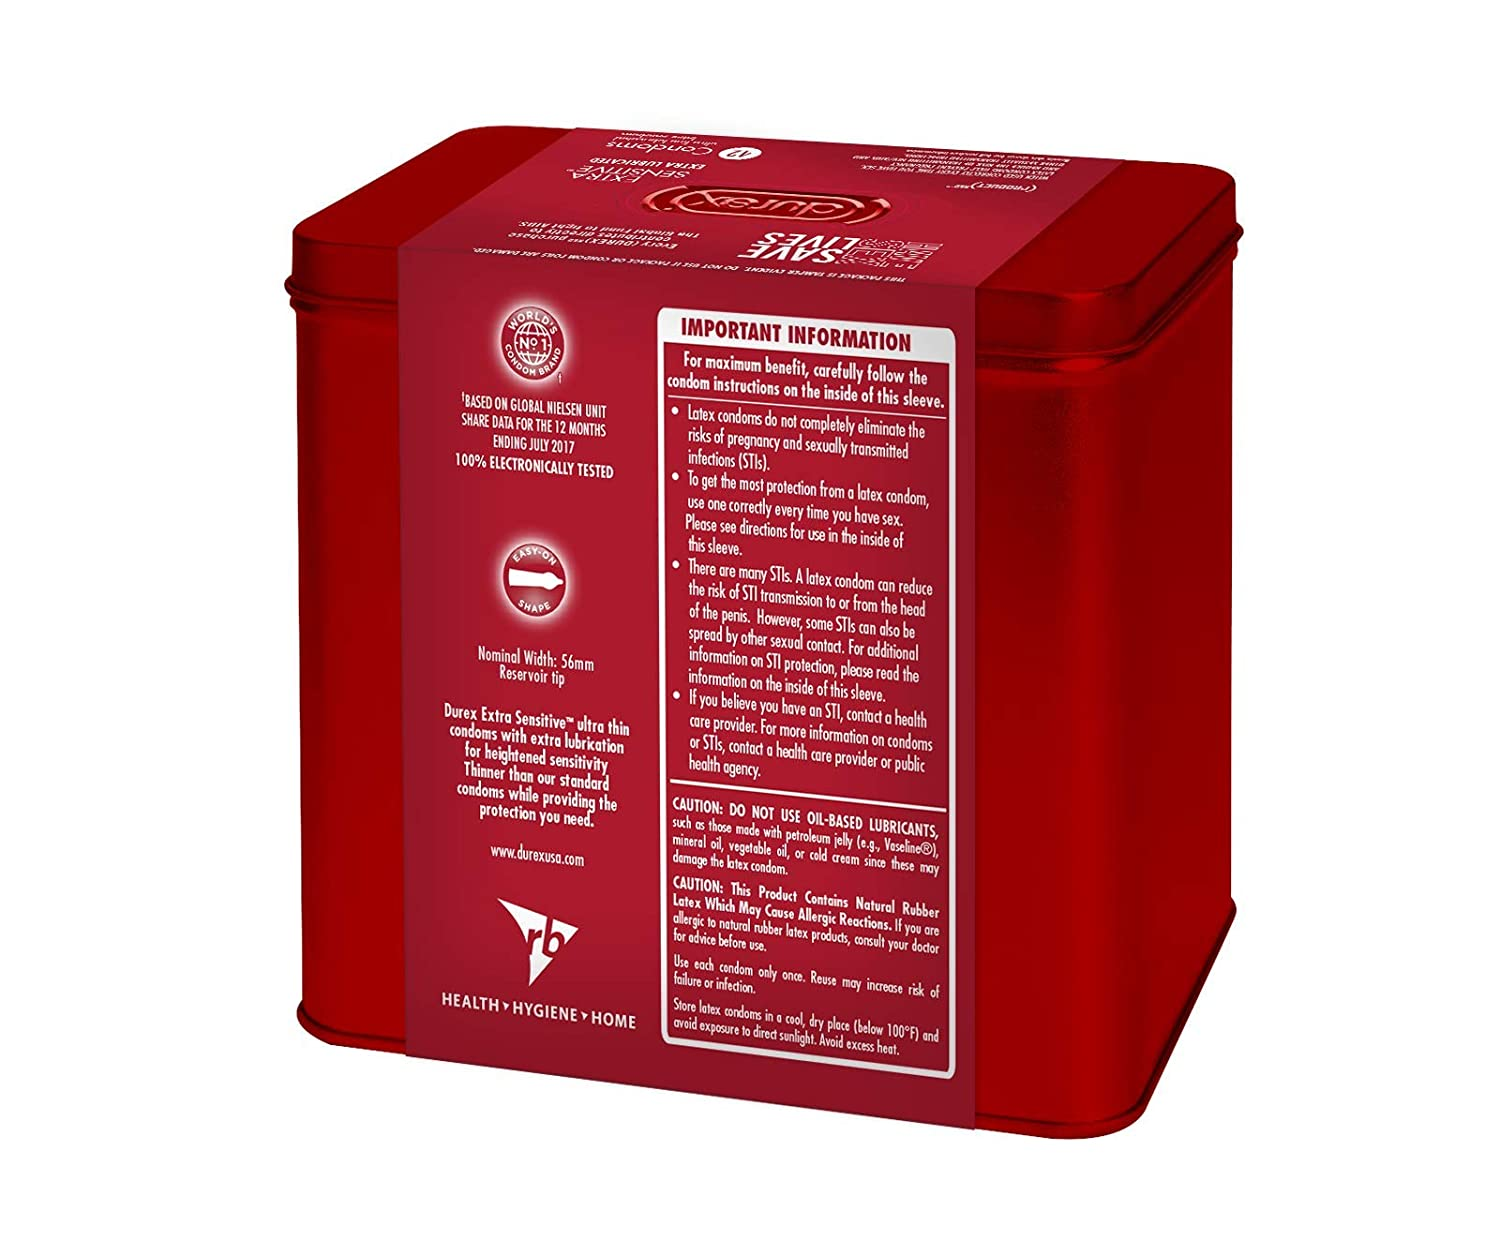 Durex Red Condom Extra Sensitive 42 Count Ultra Play Intimate Lube 100 Ml Free Kondom Ribbed Isi 3 Fine Lubricated Natural Latex Condoms Product Health Personal Care